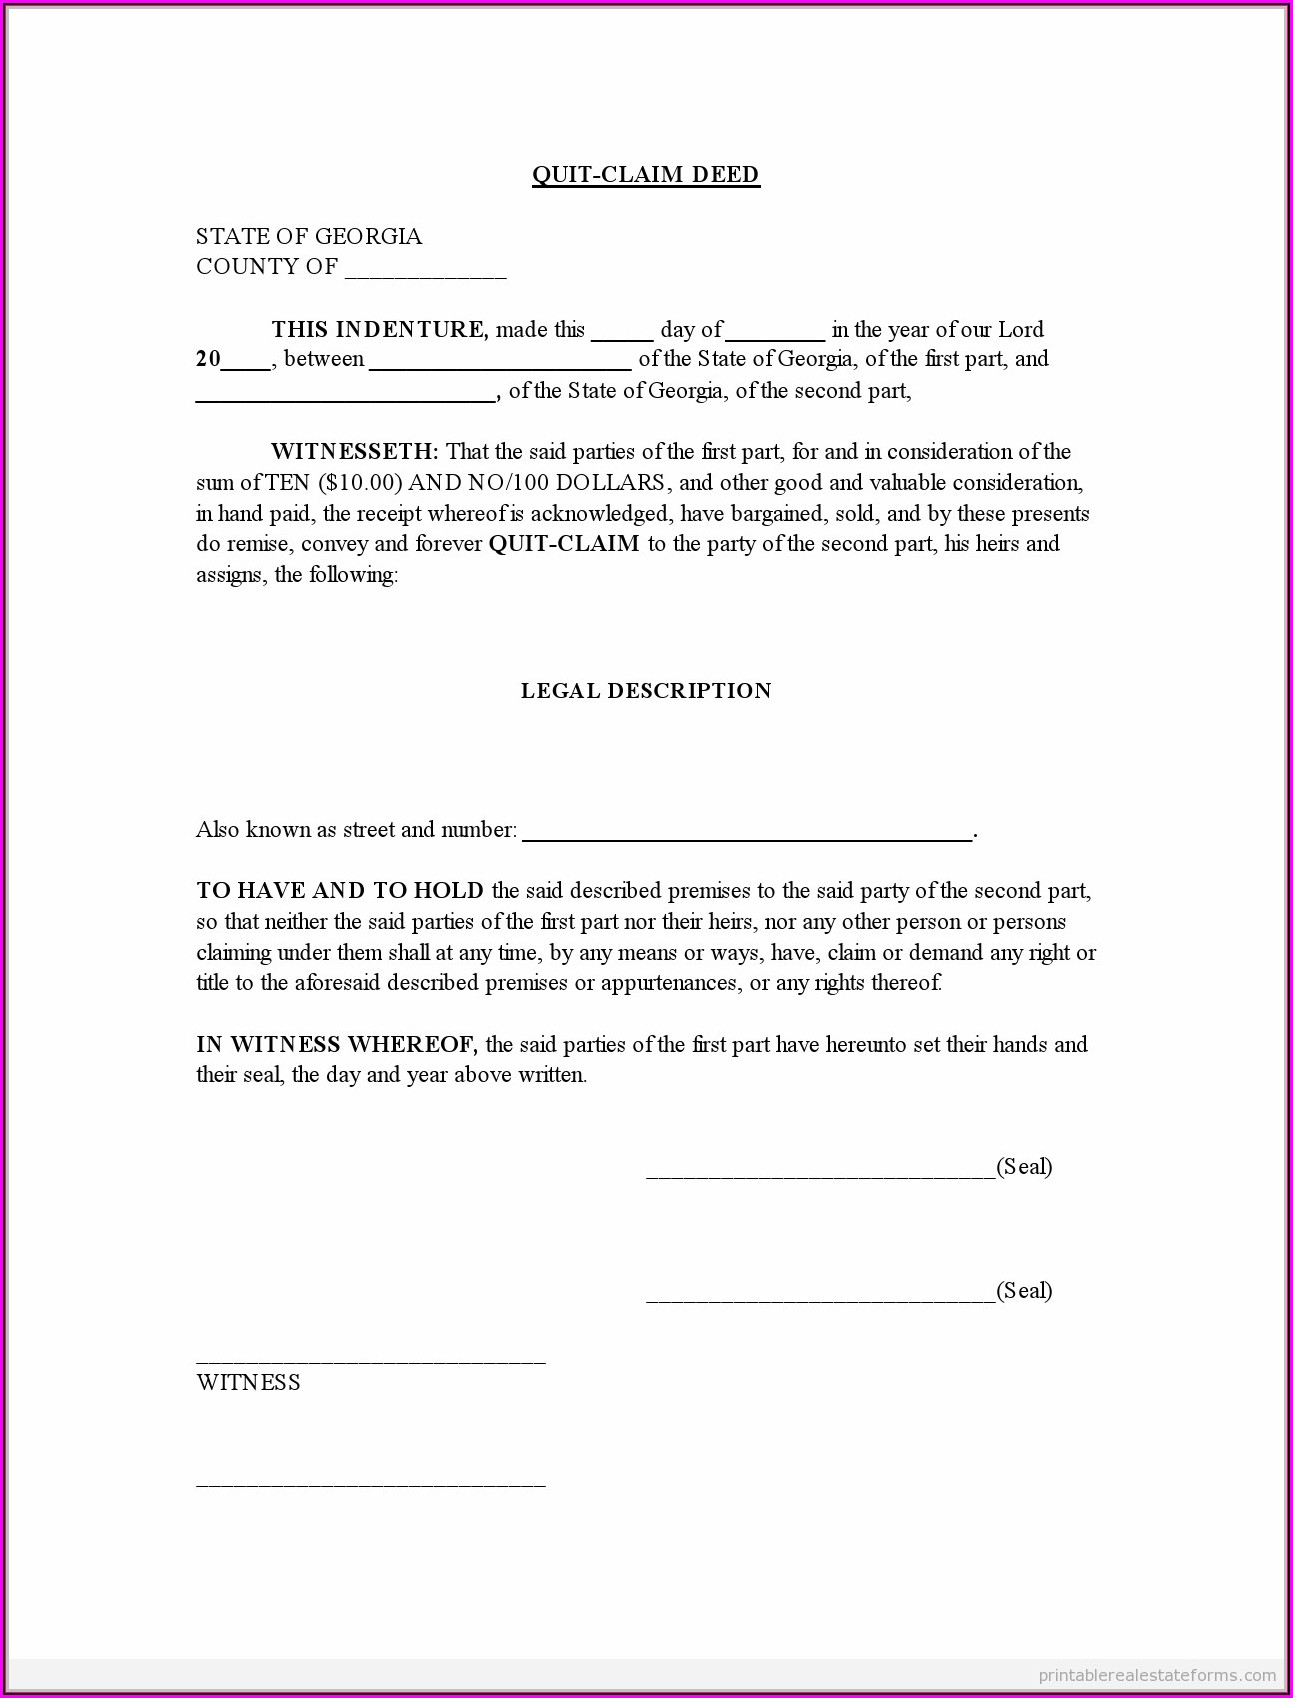 Free Printable Quit Claim Deed Form